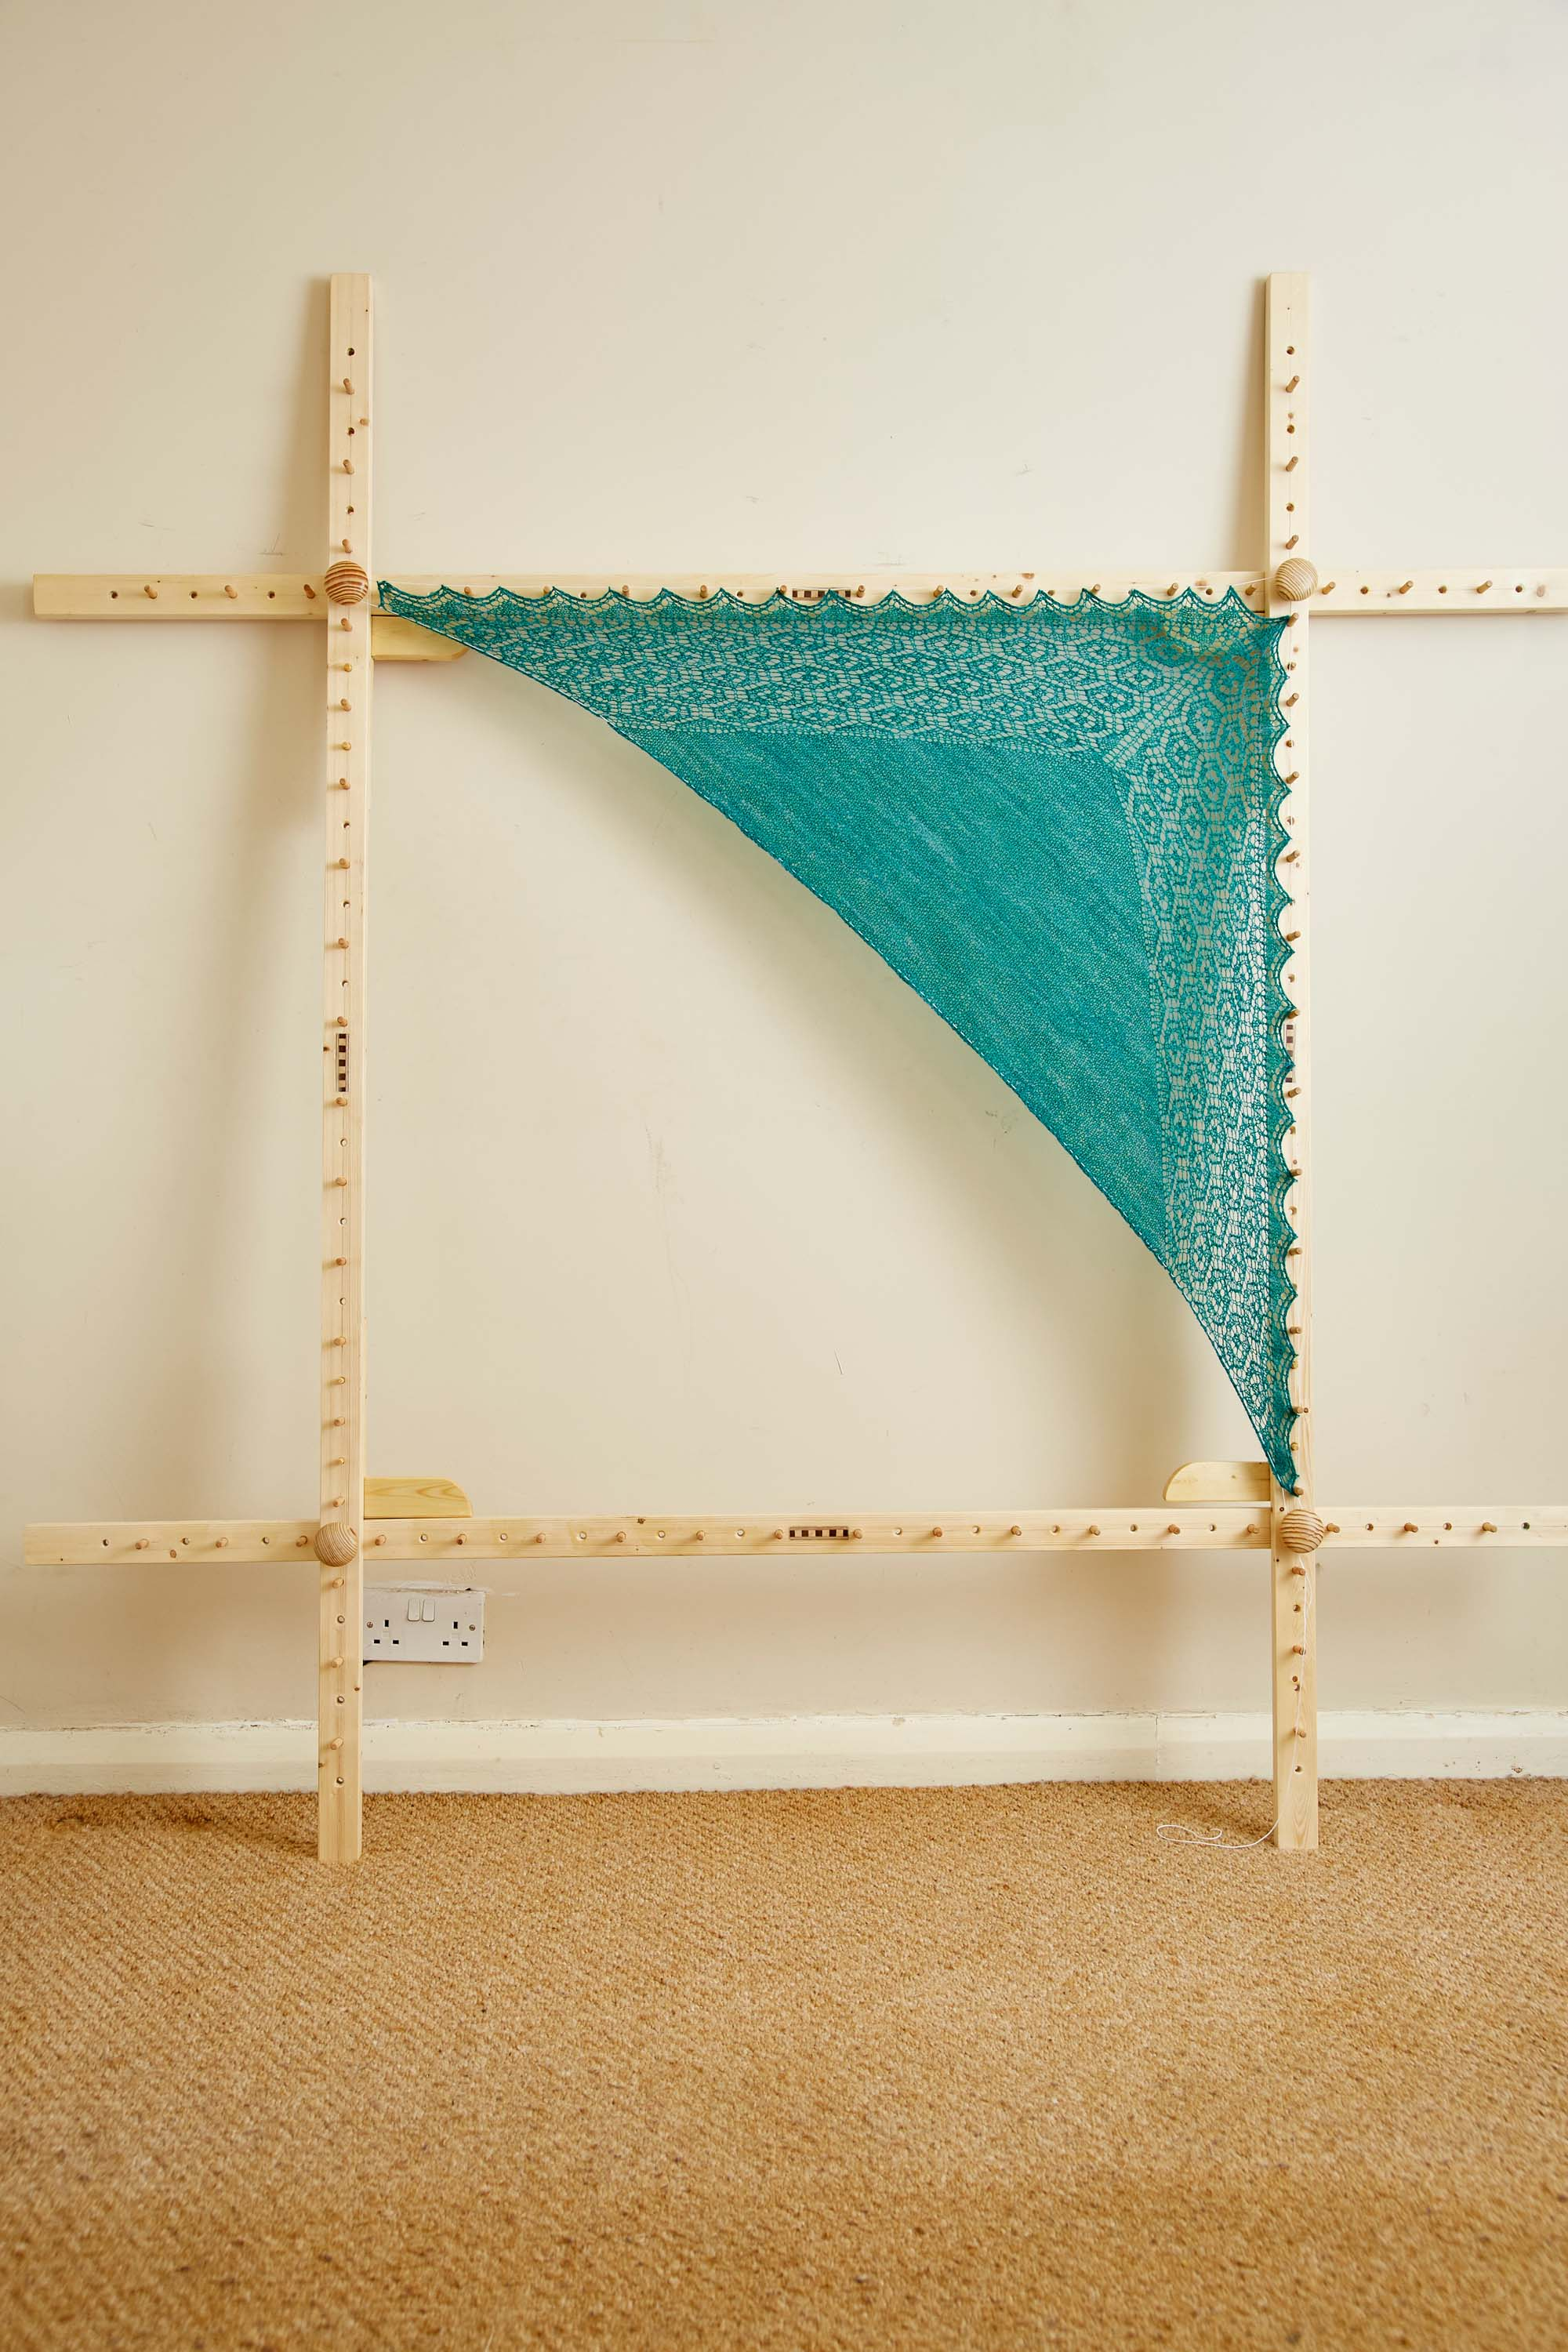 Once you've looped the cotton over all of the pegs, leave your hap to dry.